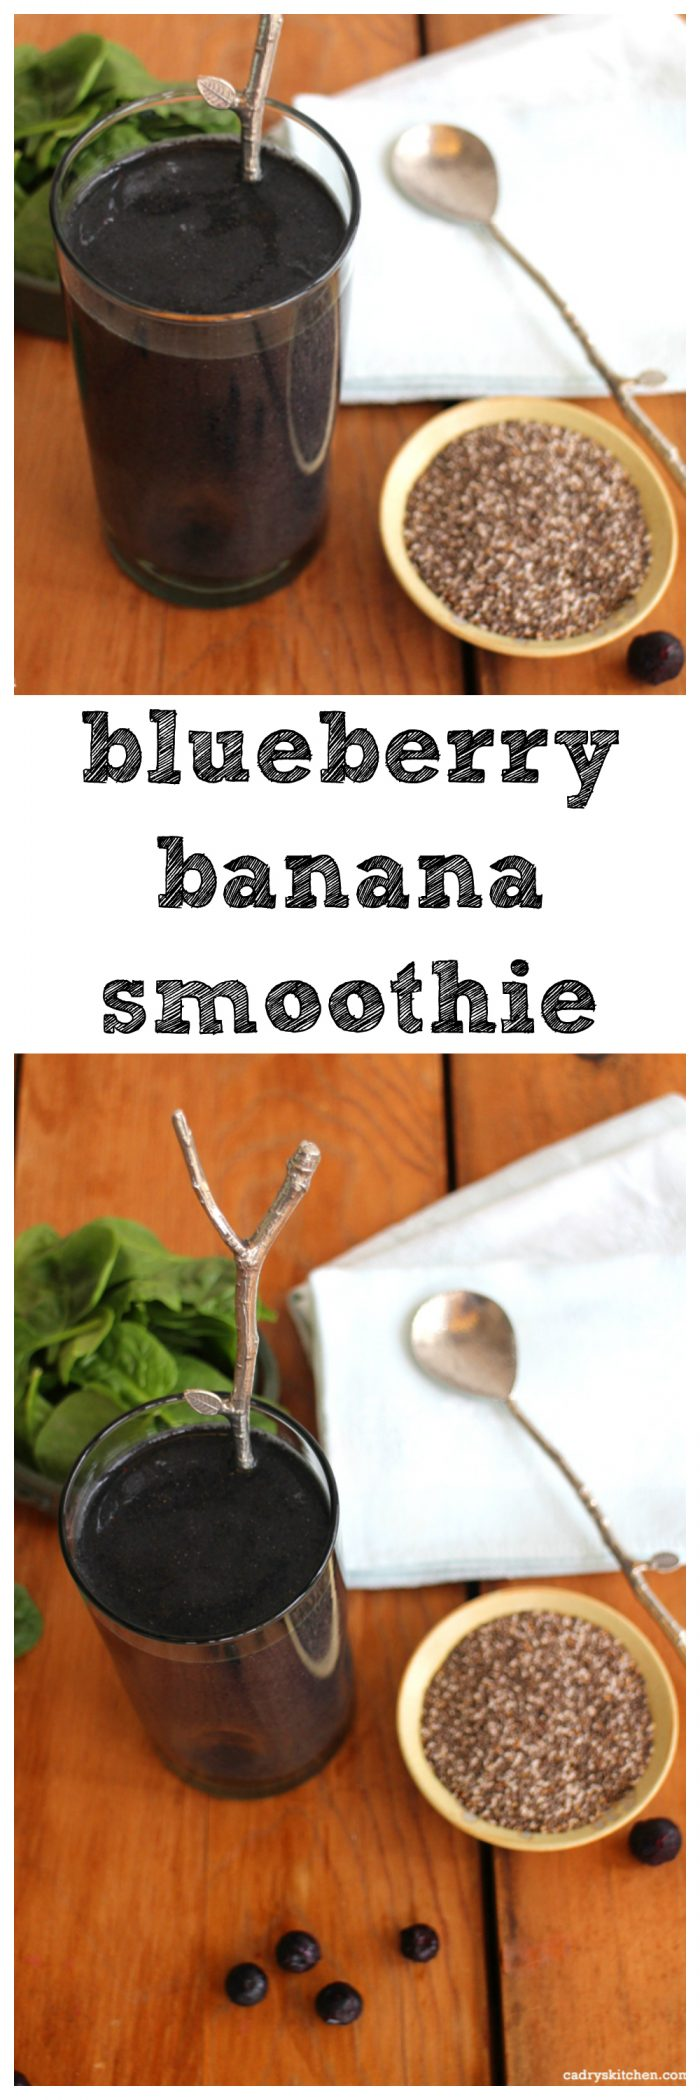 This blueberry banana smoothie is a mouthwatering start to the day. It makes for a great breakfast or afternoon snack. Plus, it's vegan & gluten-free. | cadryskitchen.com